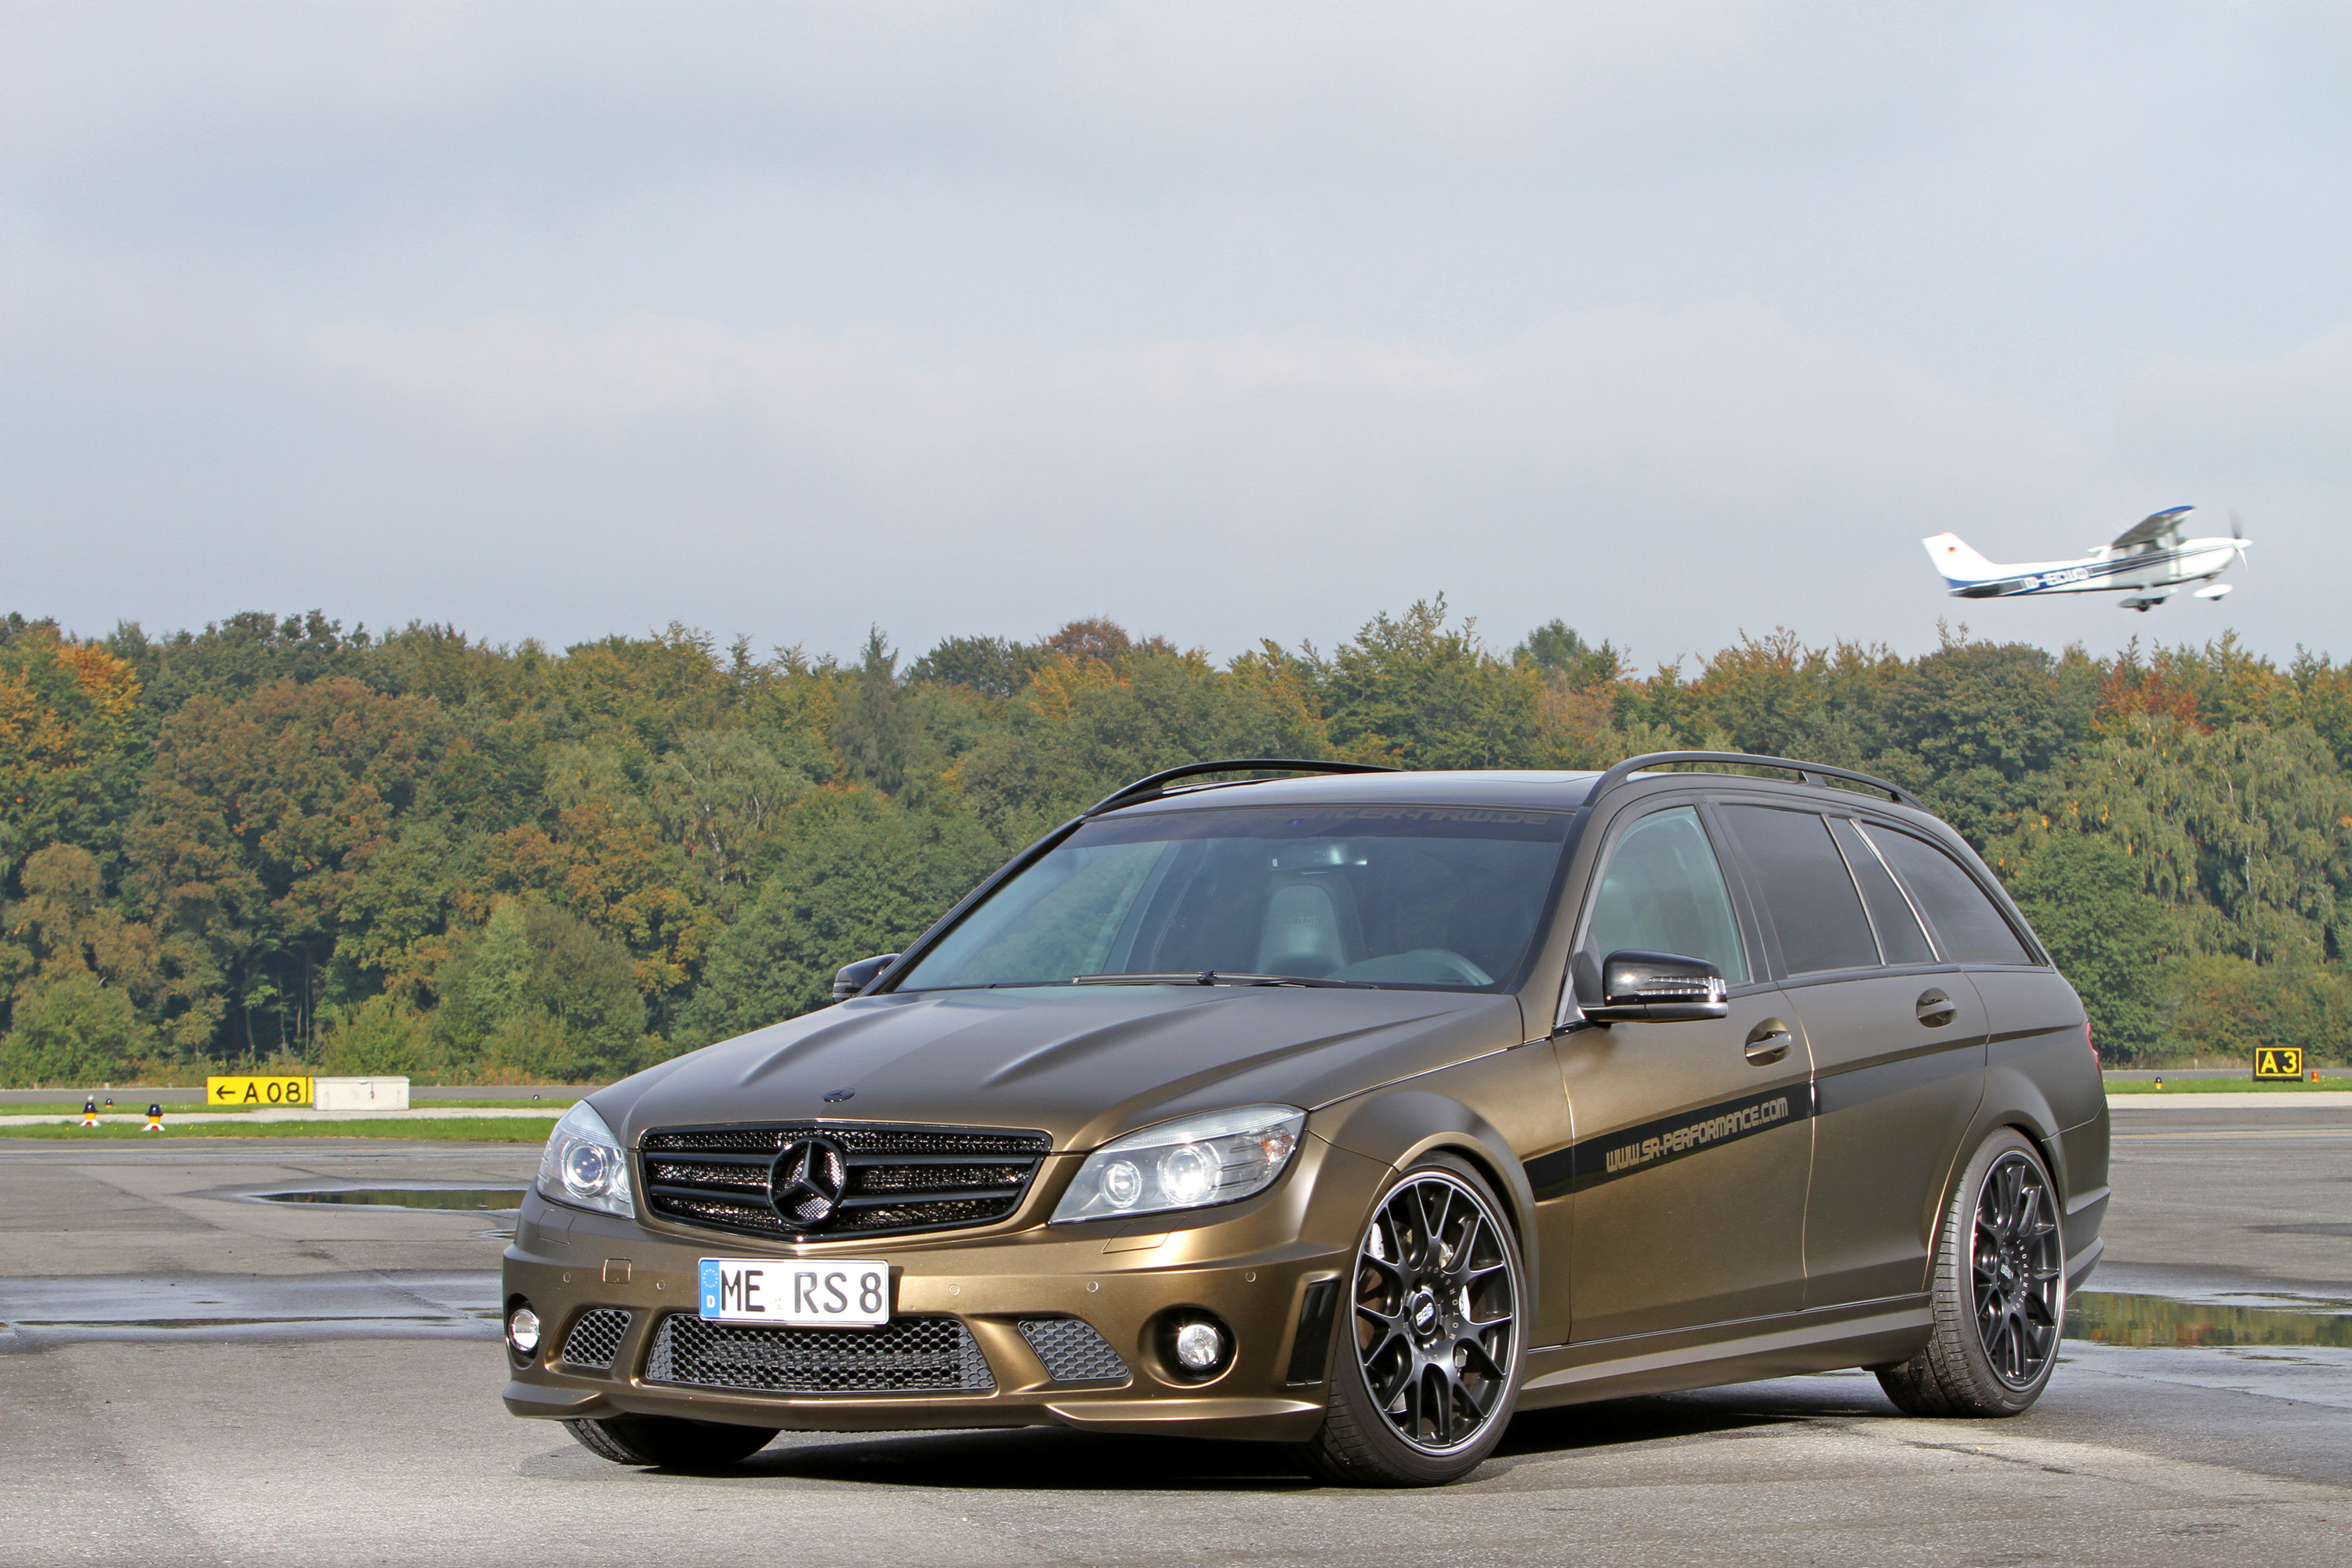 2013 mercedes benz c63 amg by foliencenter nrw top speed. Black Bedroom Furniture Sets. Home Design Ideas